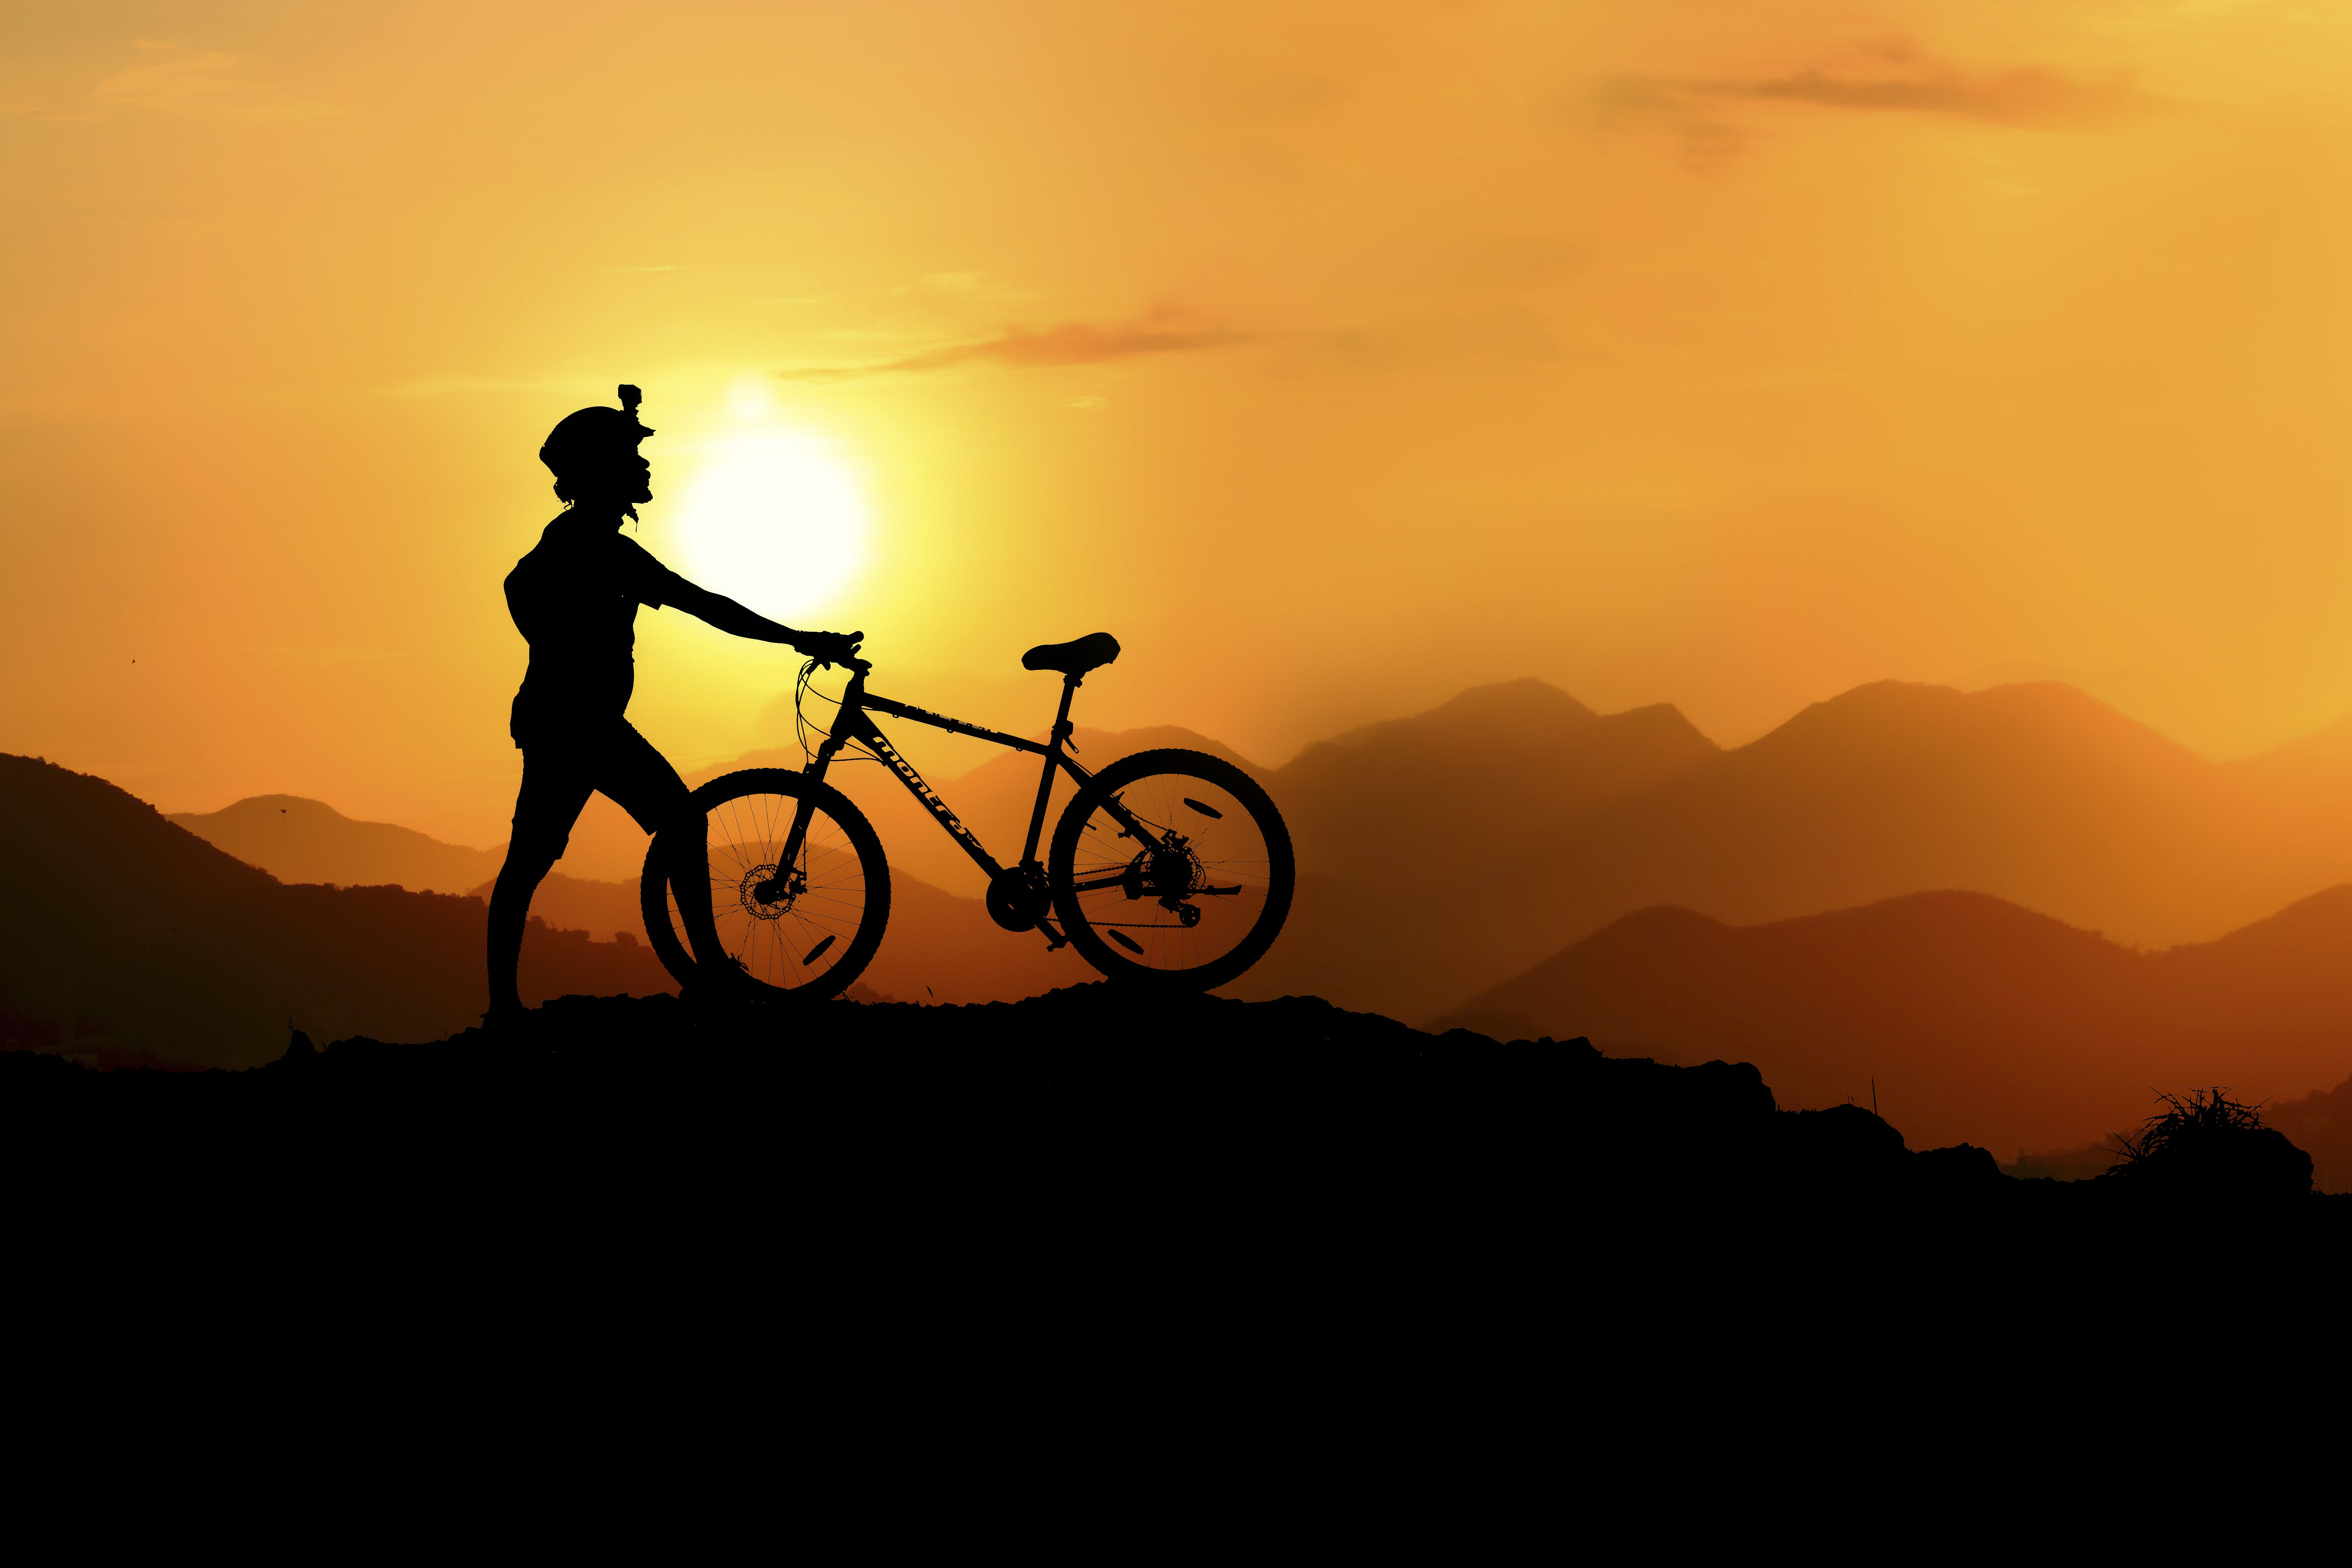 Silhouette Photography of Biker on Top of Hill